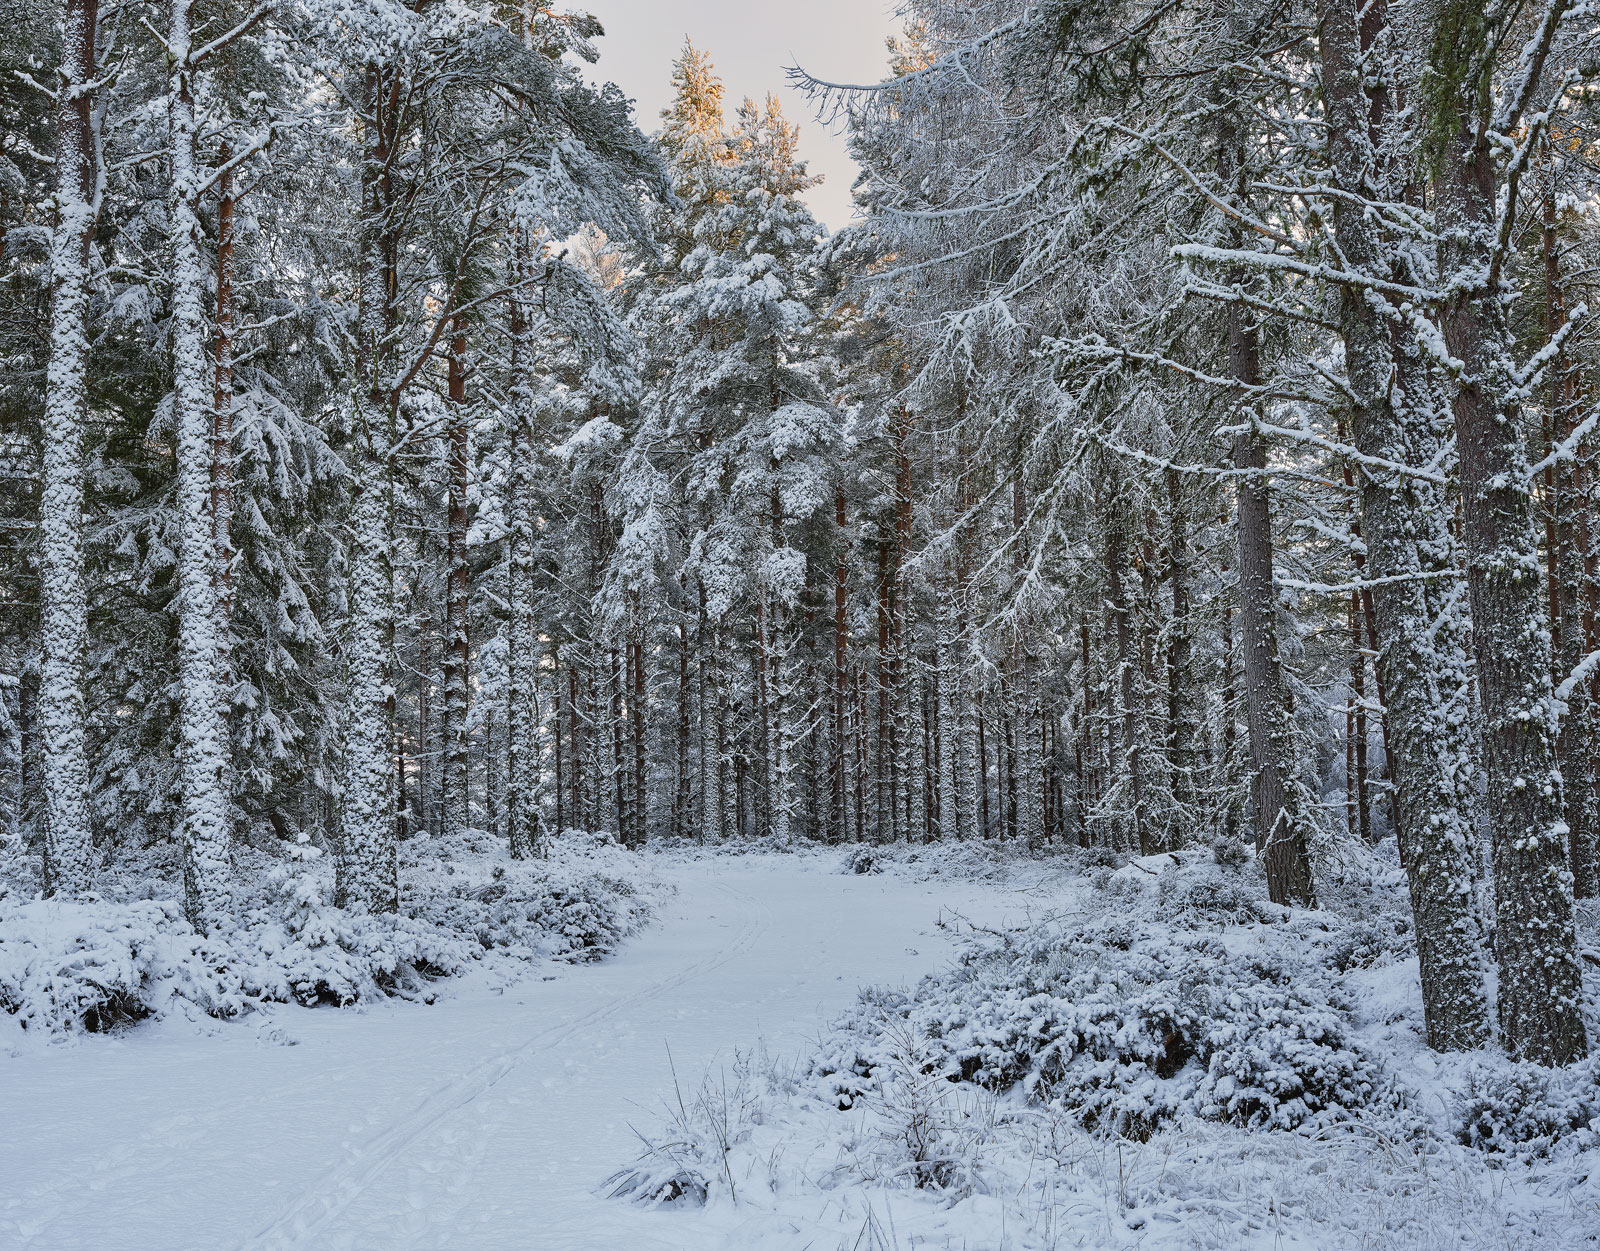 I passed through pine woodland covered with fresh new snow and trunks completely spattered where the wind had driven it in at...